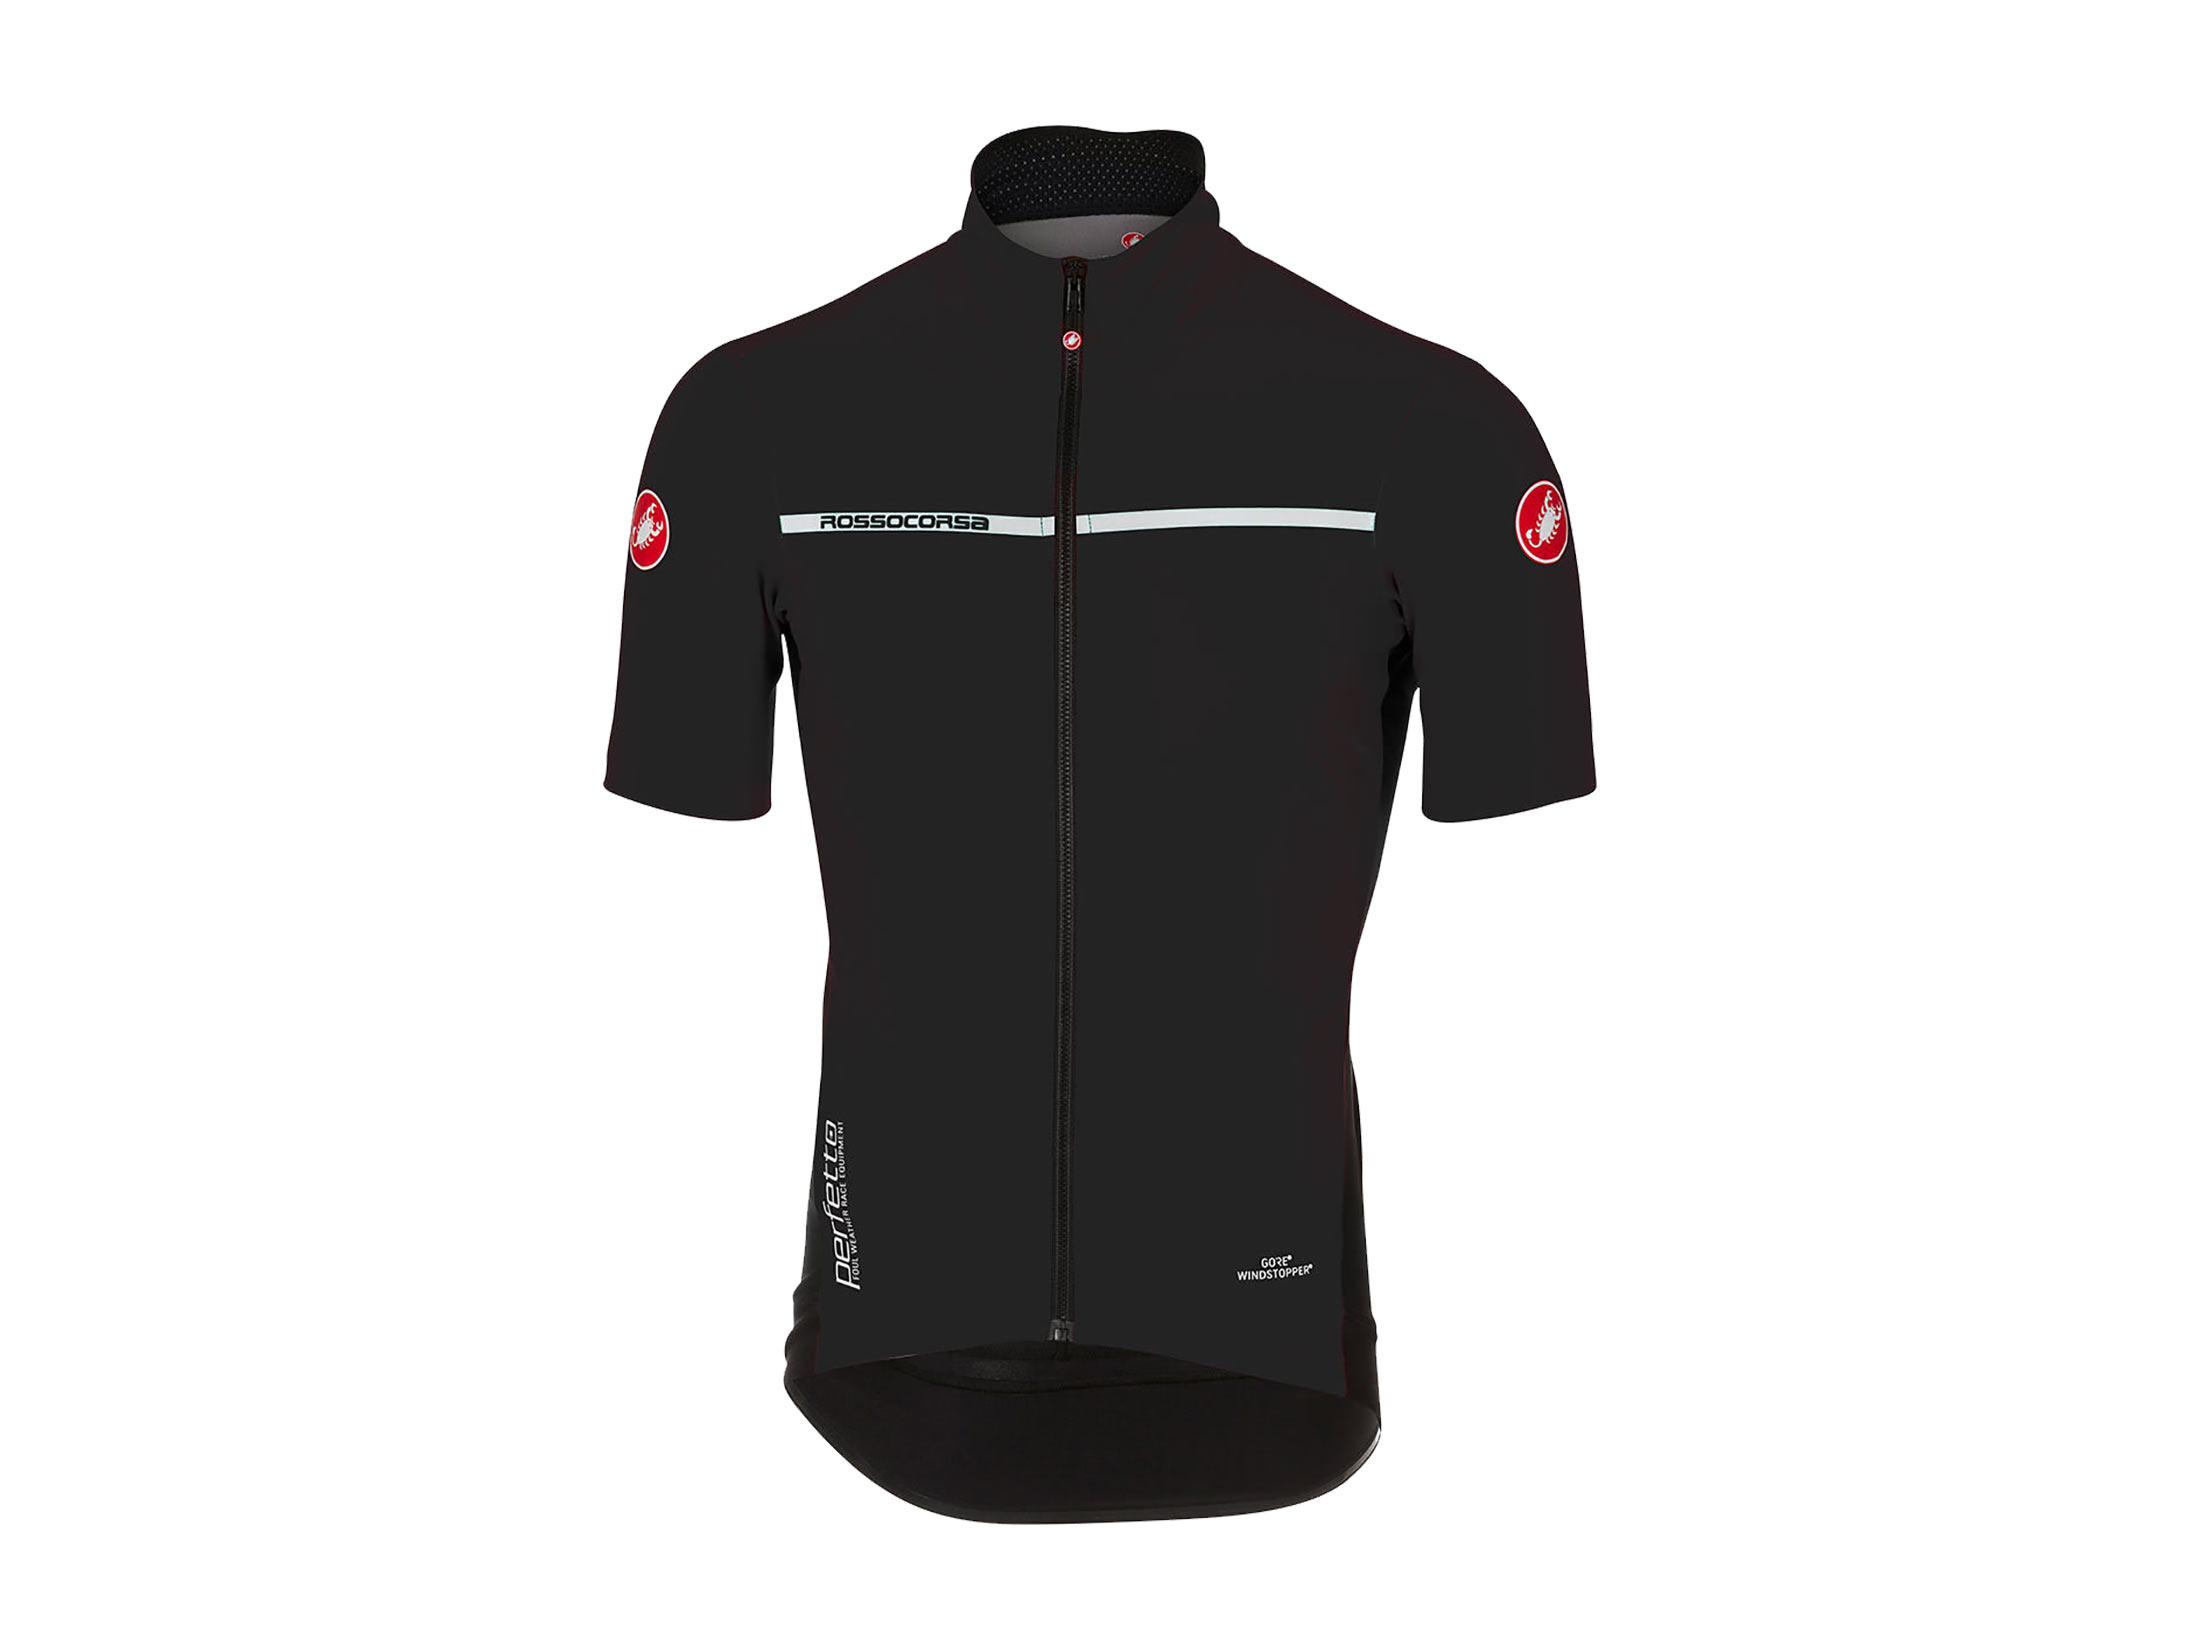 Castelli Perfetto Light 2 Jersey - Light Black